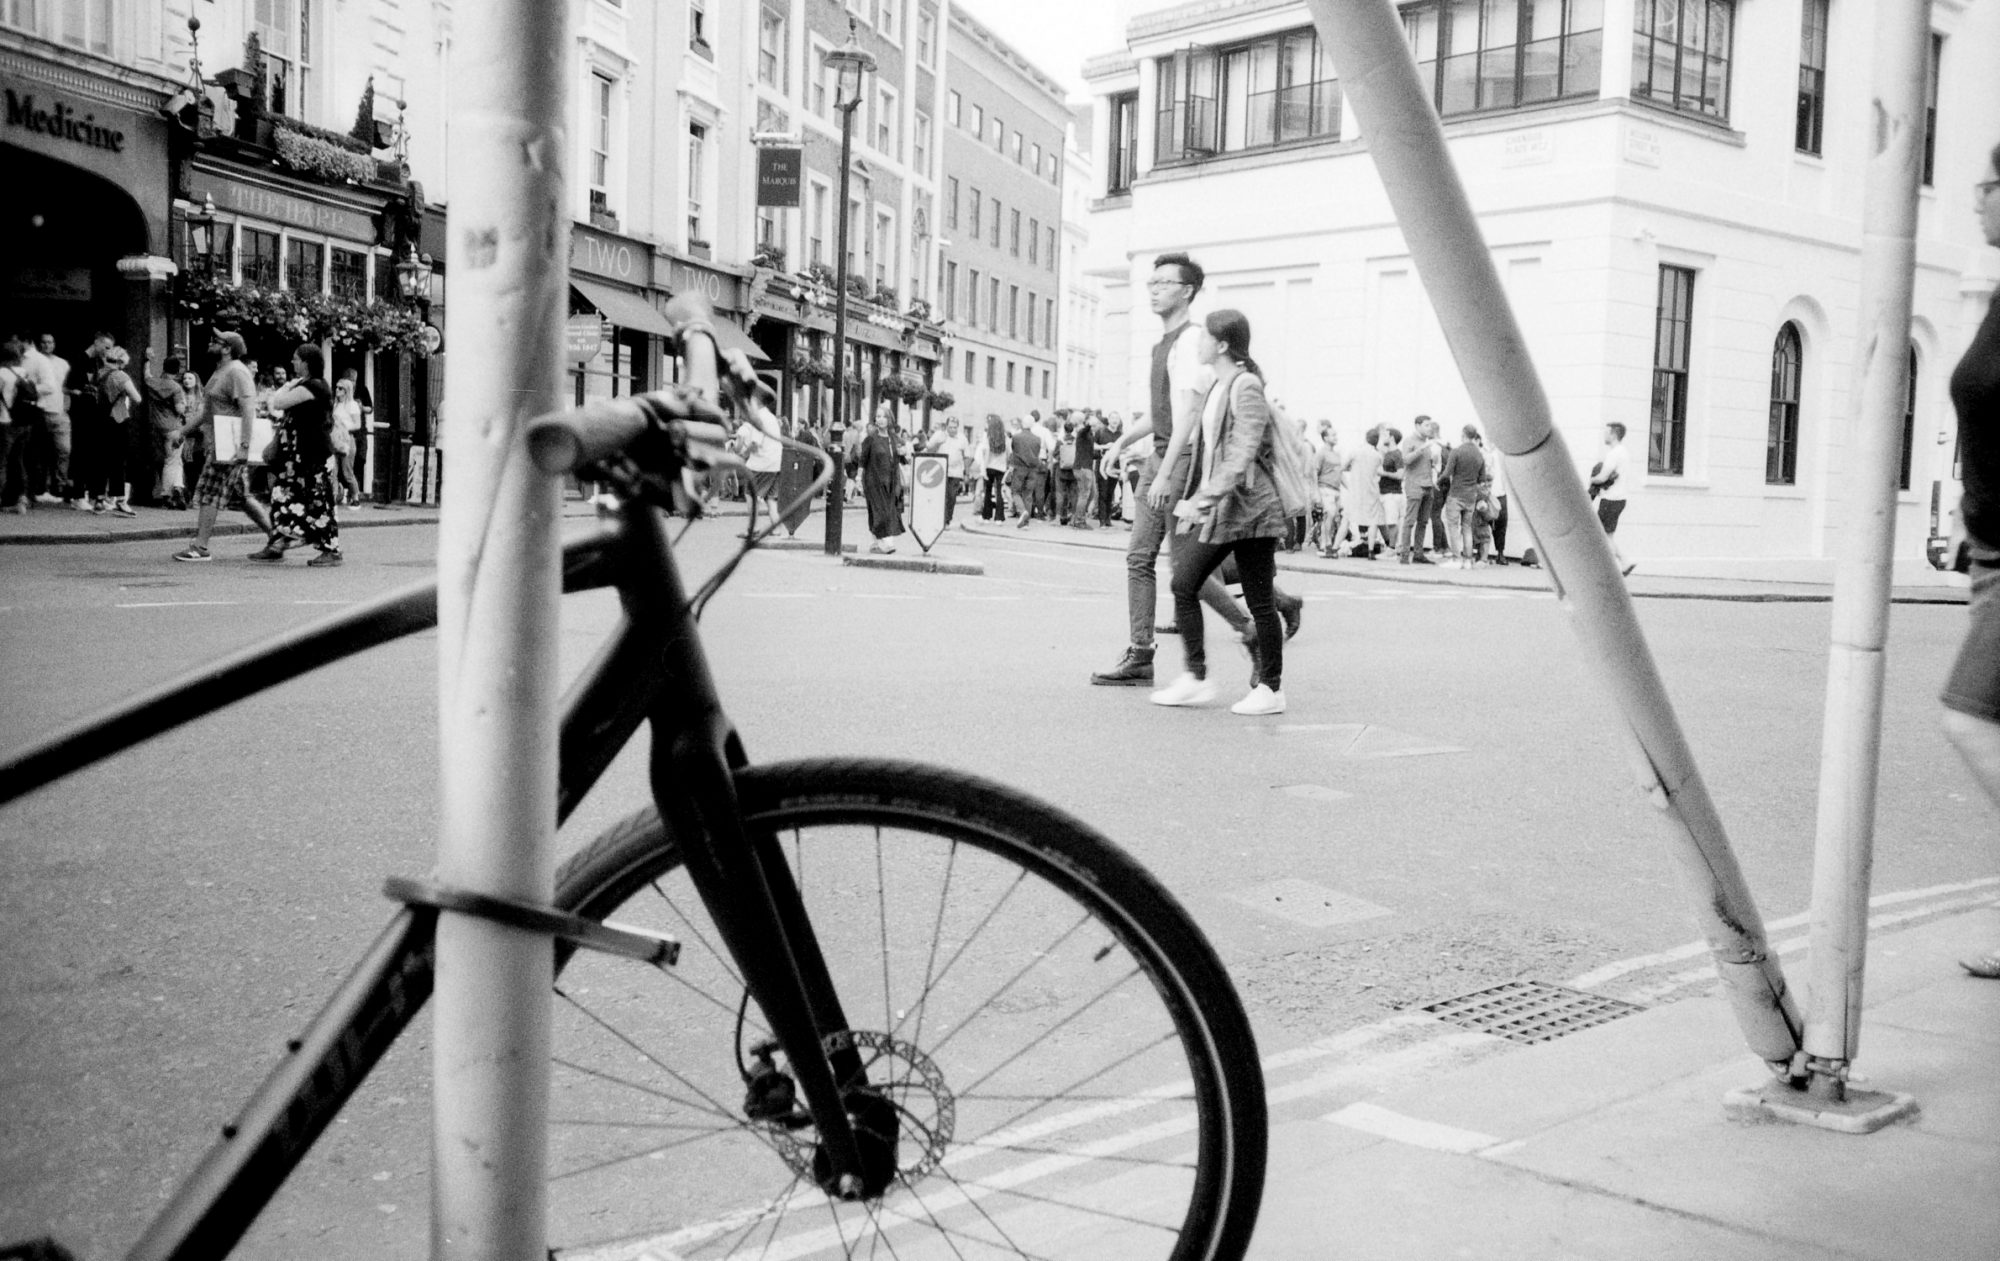 Bicycle and people on street (Pic: Stephen Dowling)